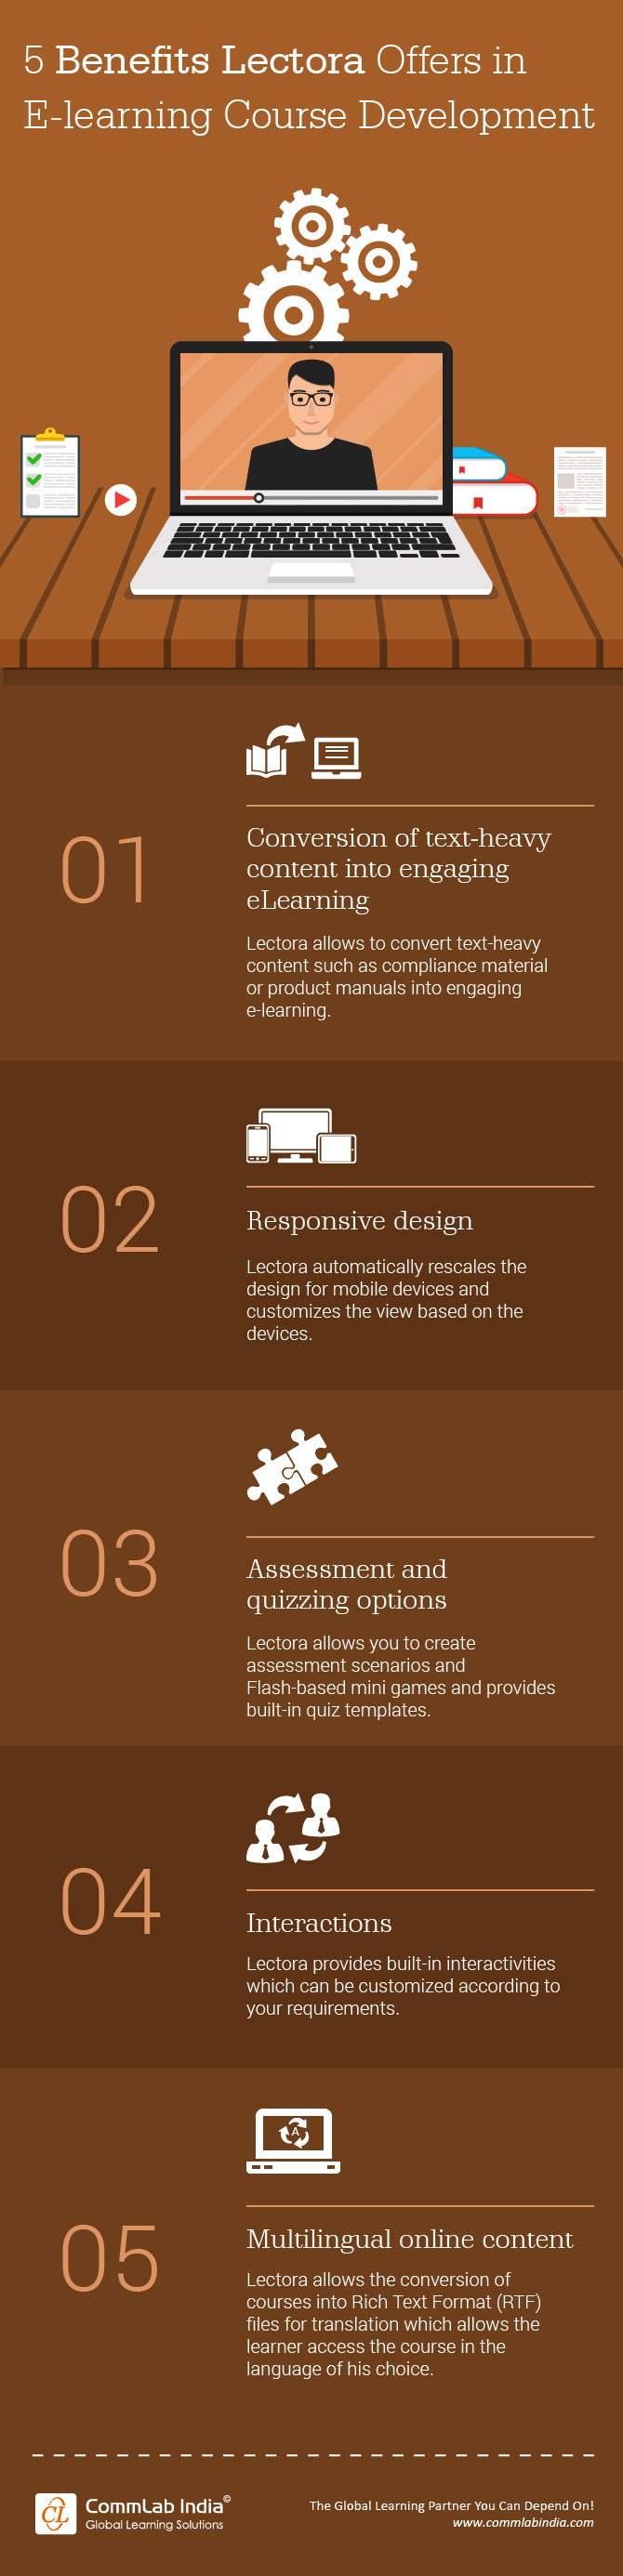 5 Benefits Lectora Offers in E-learning Course Development [Infographic]